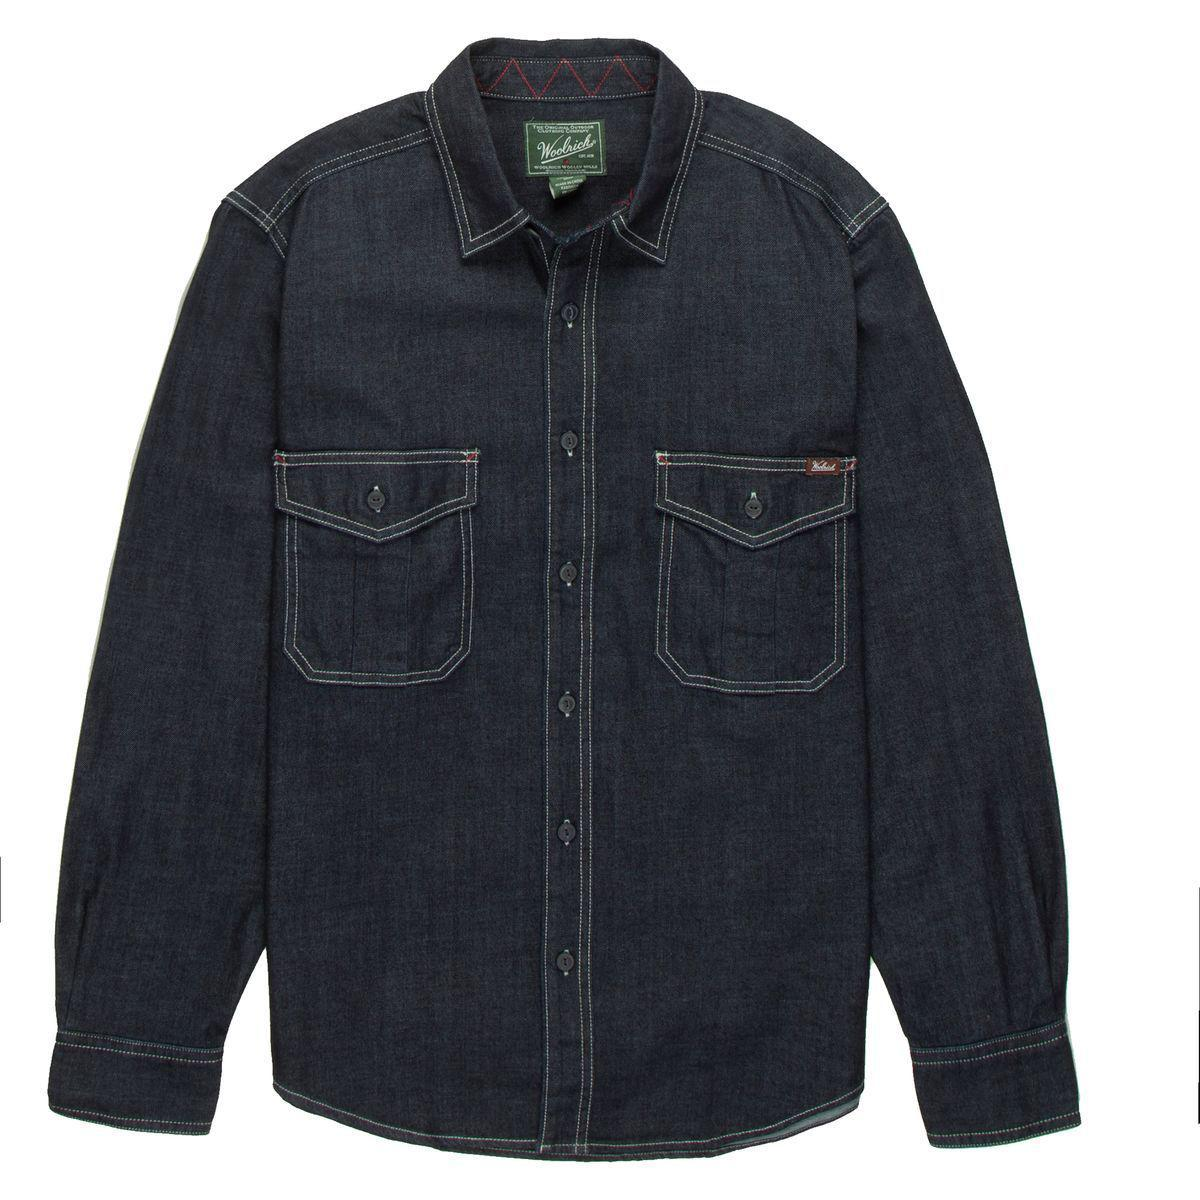 52d4c1f700 Lyst - Woolrich Hemlock Denim Shirt in Blue for Men